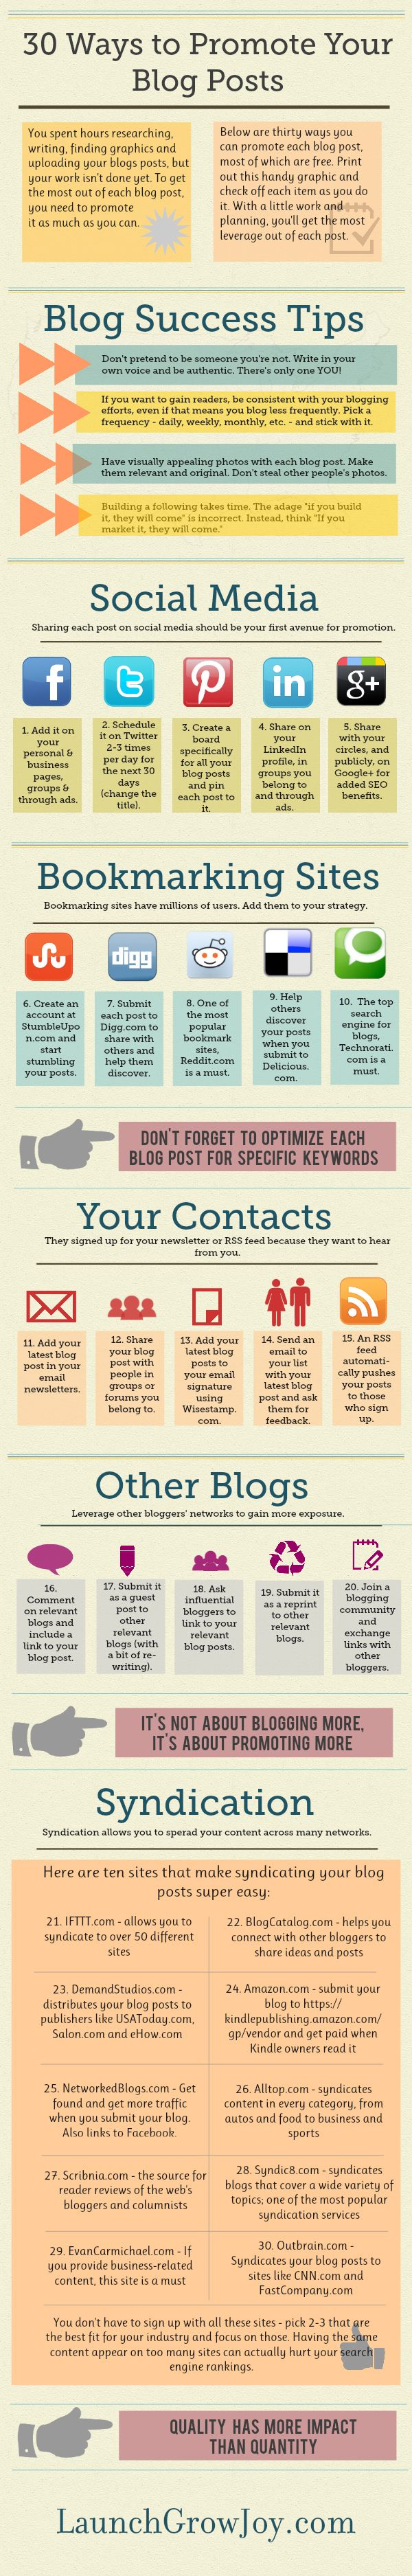 '30 ways to promote blog your blog posts' #infographic by Launch Grow Joy